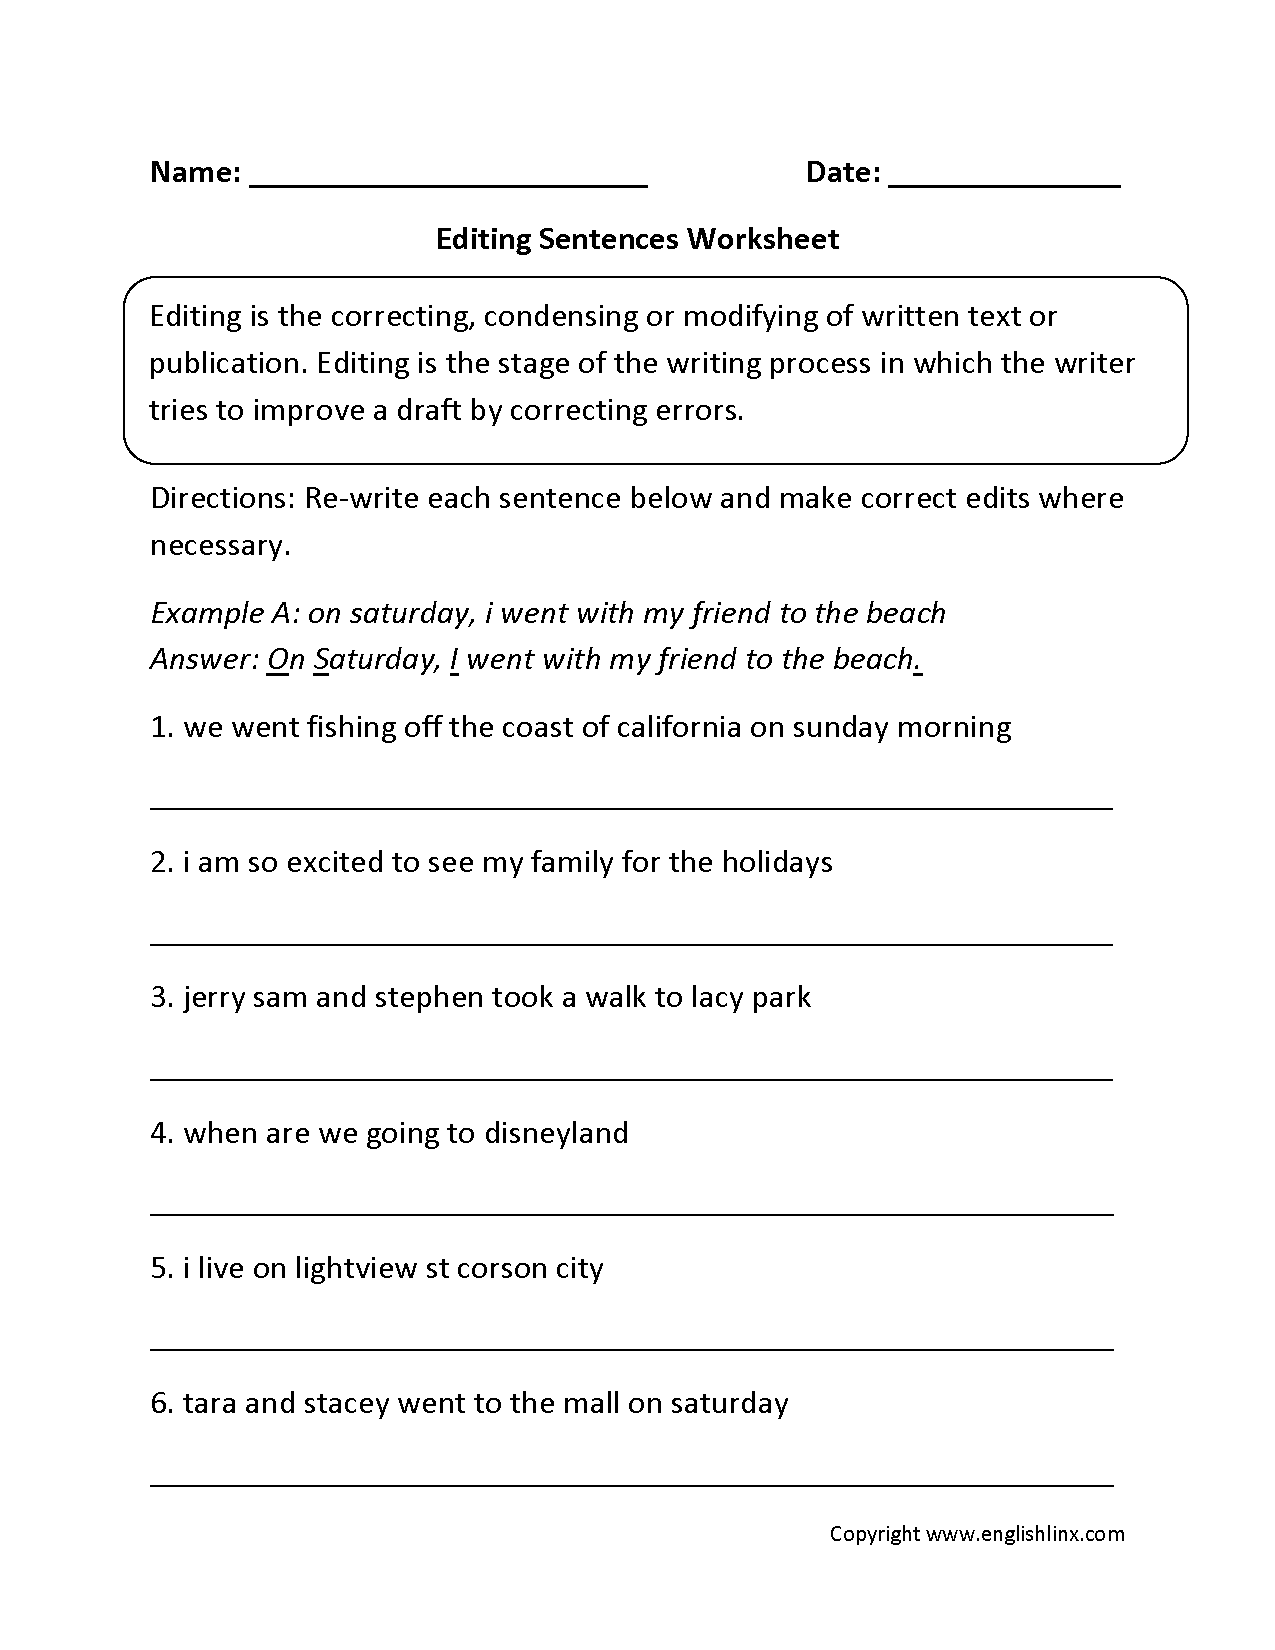 14 Best Images Of Editing Sentences Worksheets 4th Grade